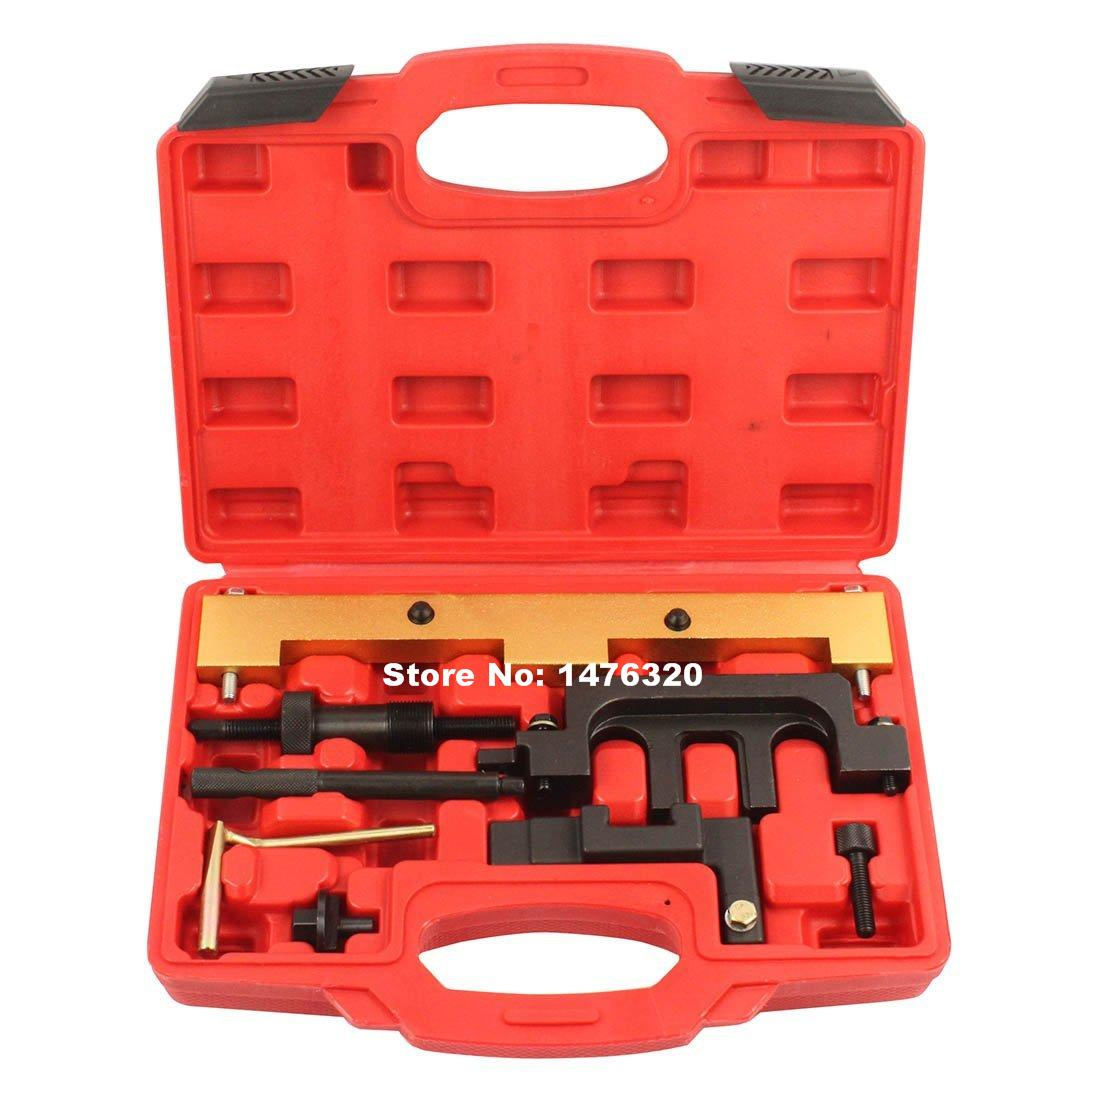 Automotive Petrol Engine Timing Camshaft Locking Alignment Tool Set For BMW N42 N46 AT2026 wholesale 2 2 2 5 dci engine camshaft timing tool crankshaft alignment locking set for renault auto repair tools 2pcs lot